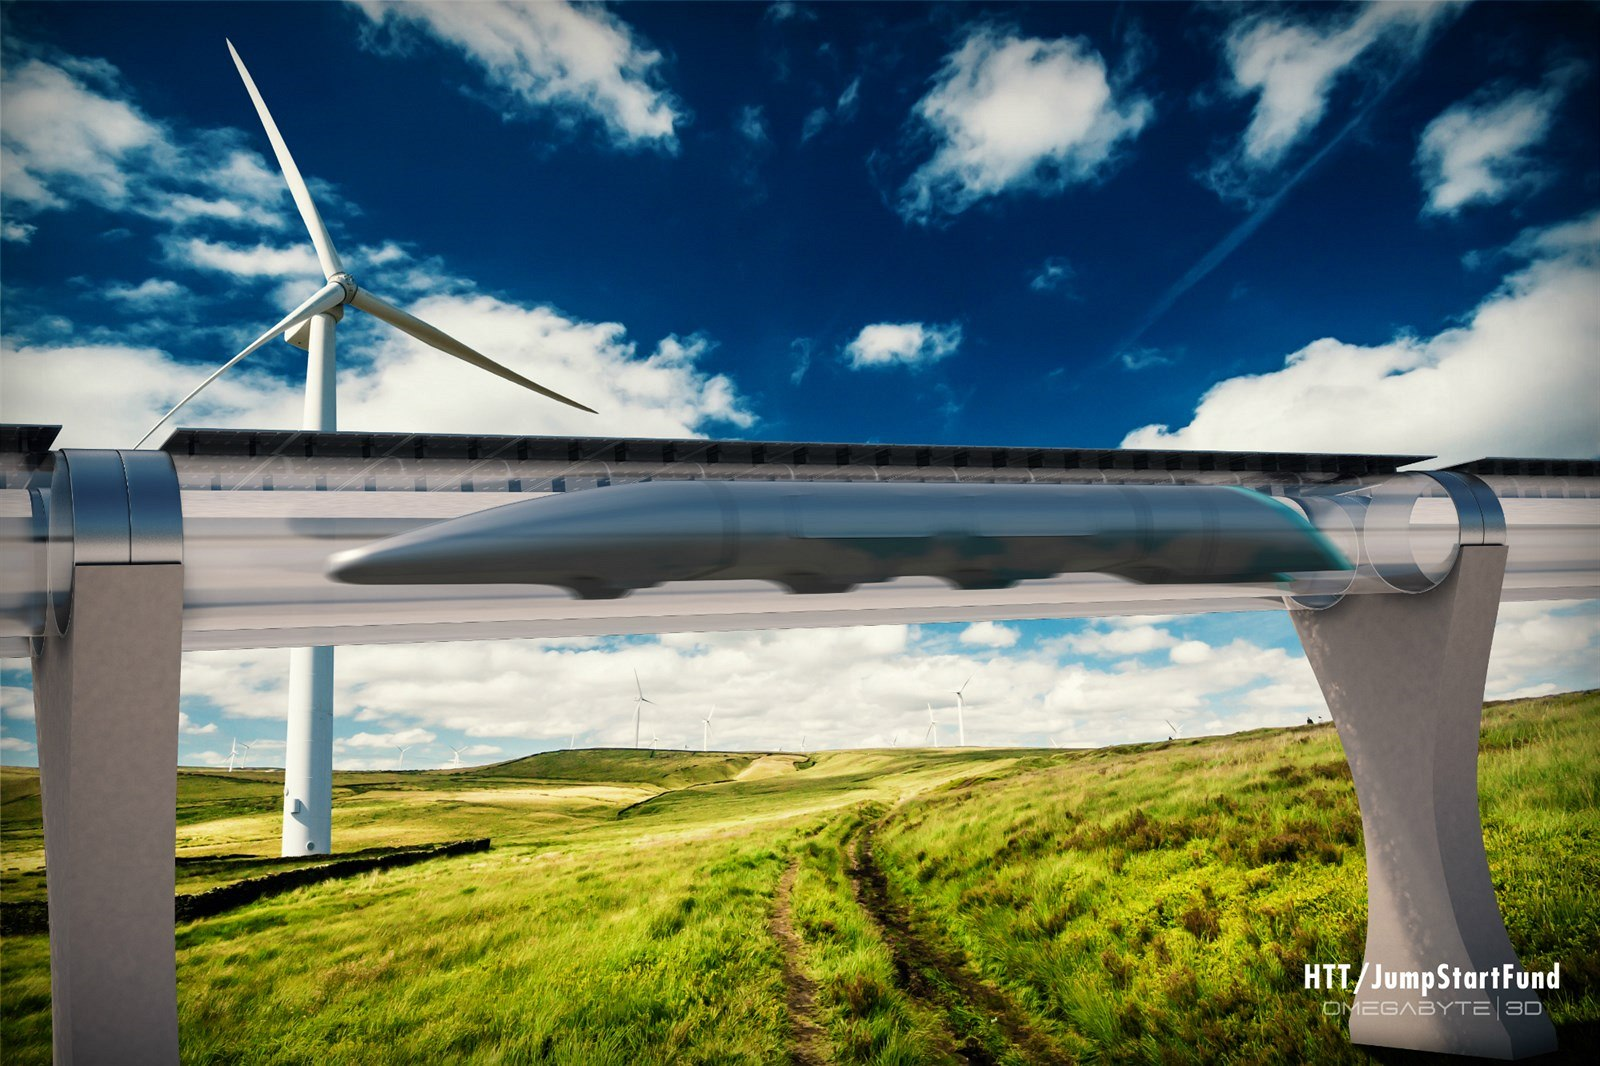 LVE68bc32_90HyperLoop_Concept_Nature_02_transp